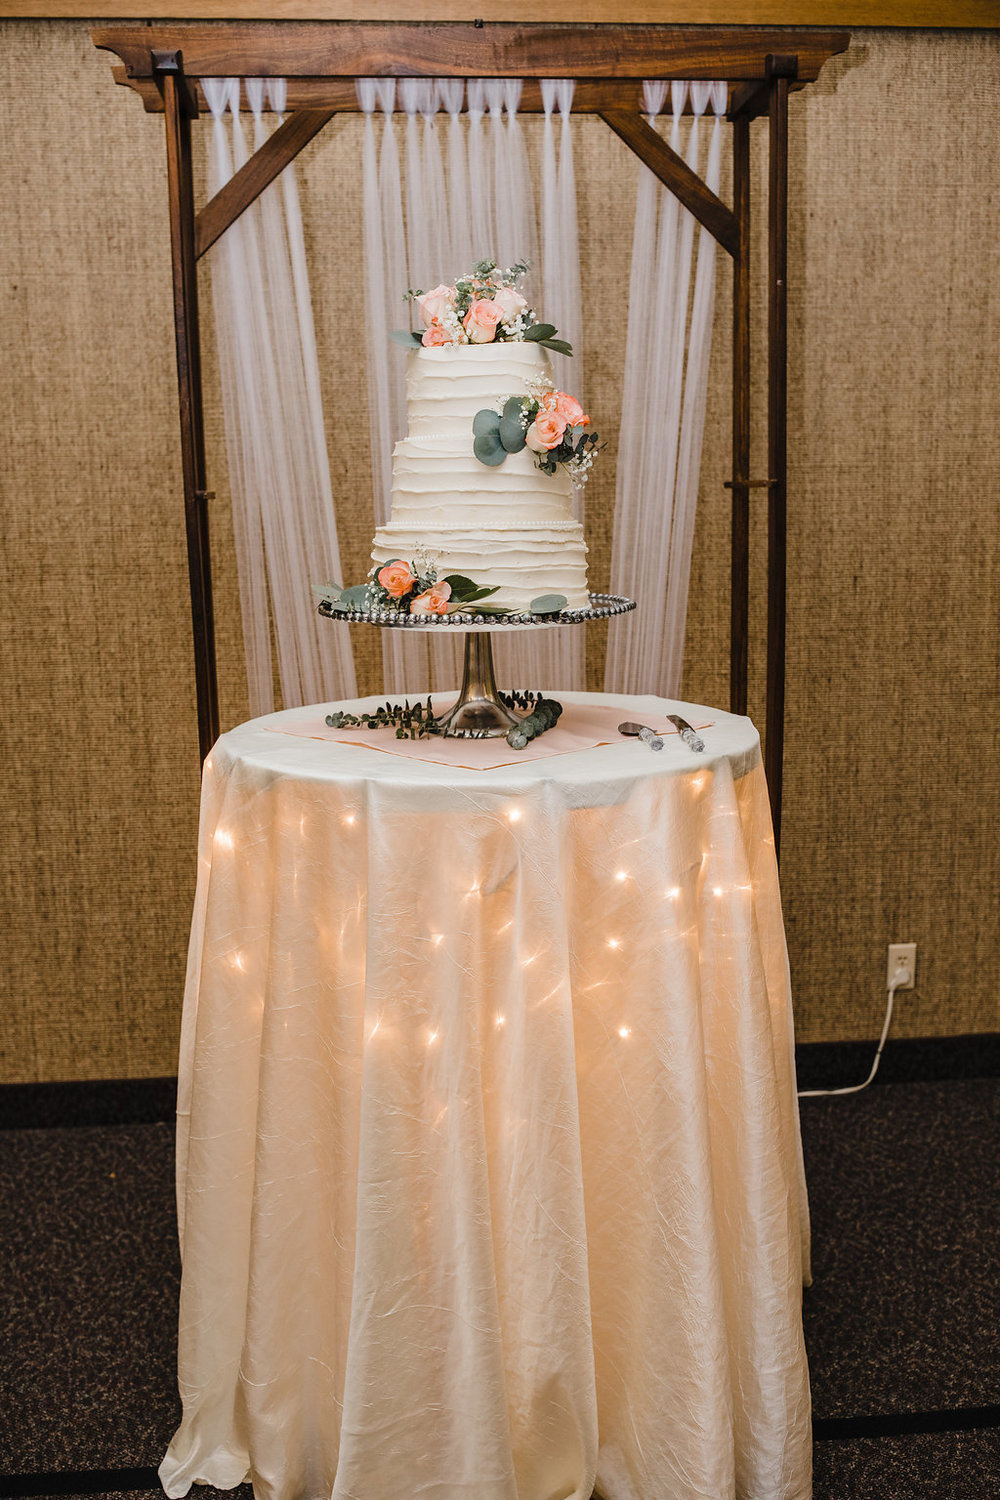 professional wedding photography at the reception lds church wedding day photos